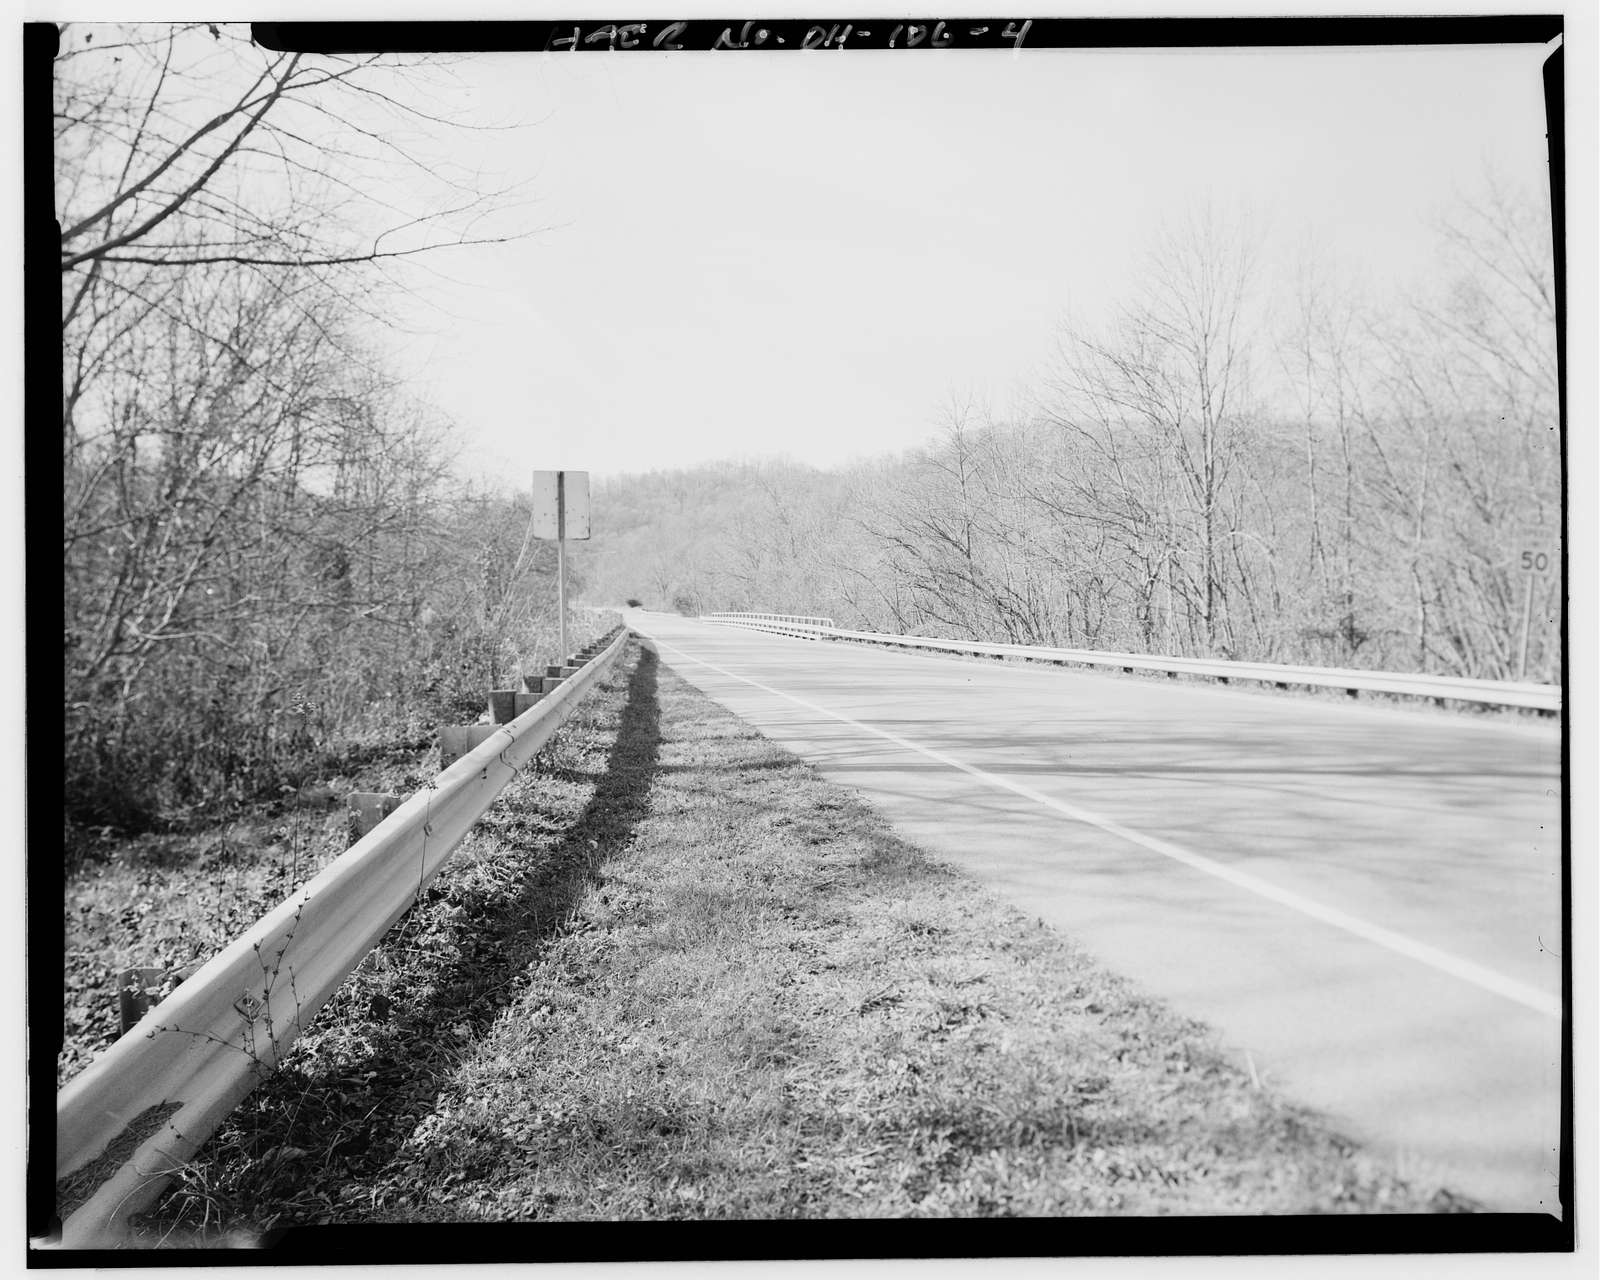 U.S. Route 52 Bridge, Spanning Isaacs Creek, Manchester, Adams County, OH